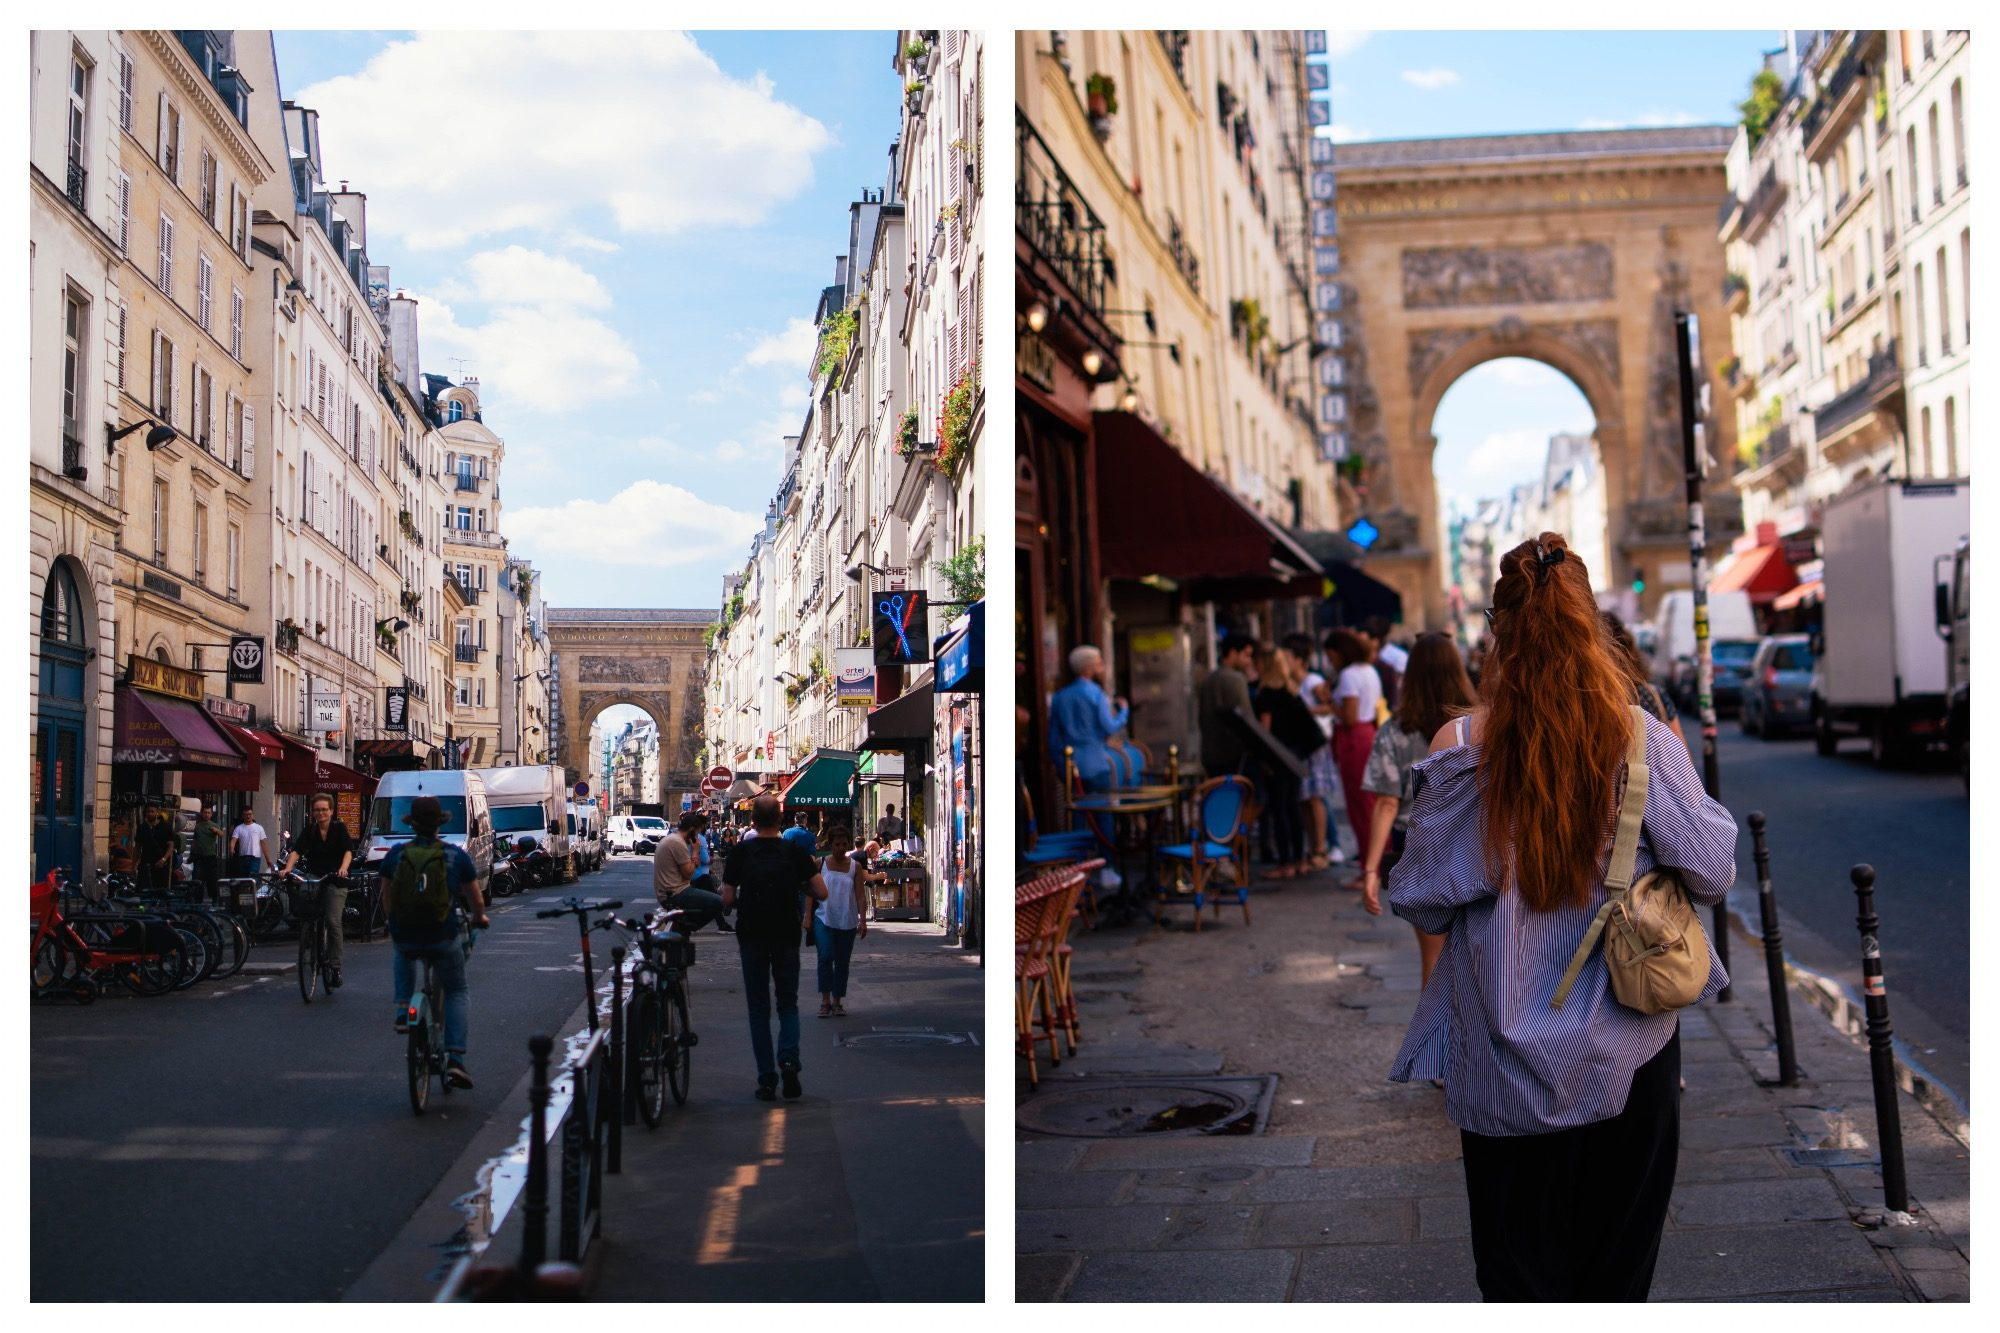 Street scene from the Faubourg Saint Denis (left) with the stone arch, formerly one of the doors of the city and a girl seen from the back with long red hair walking along the street (right).